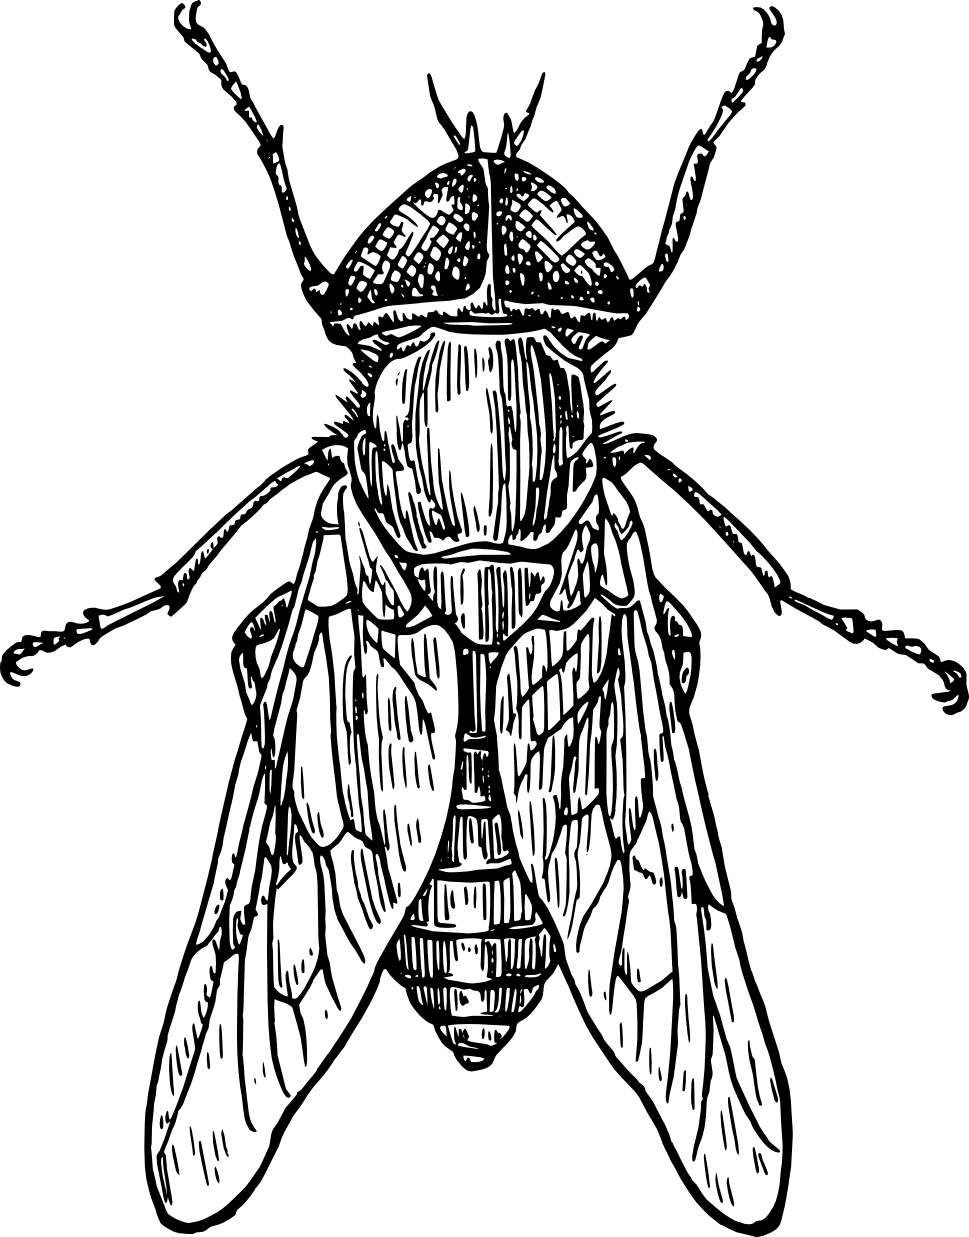 Drosophila drawing realistic